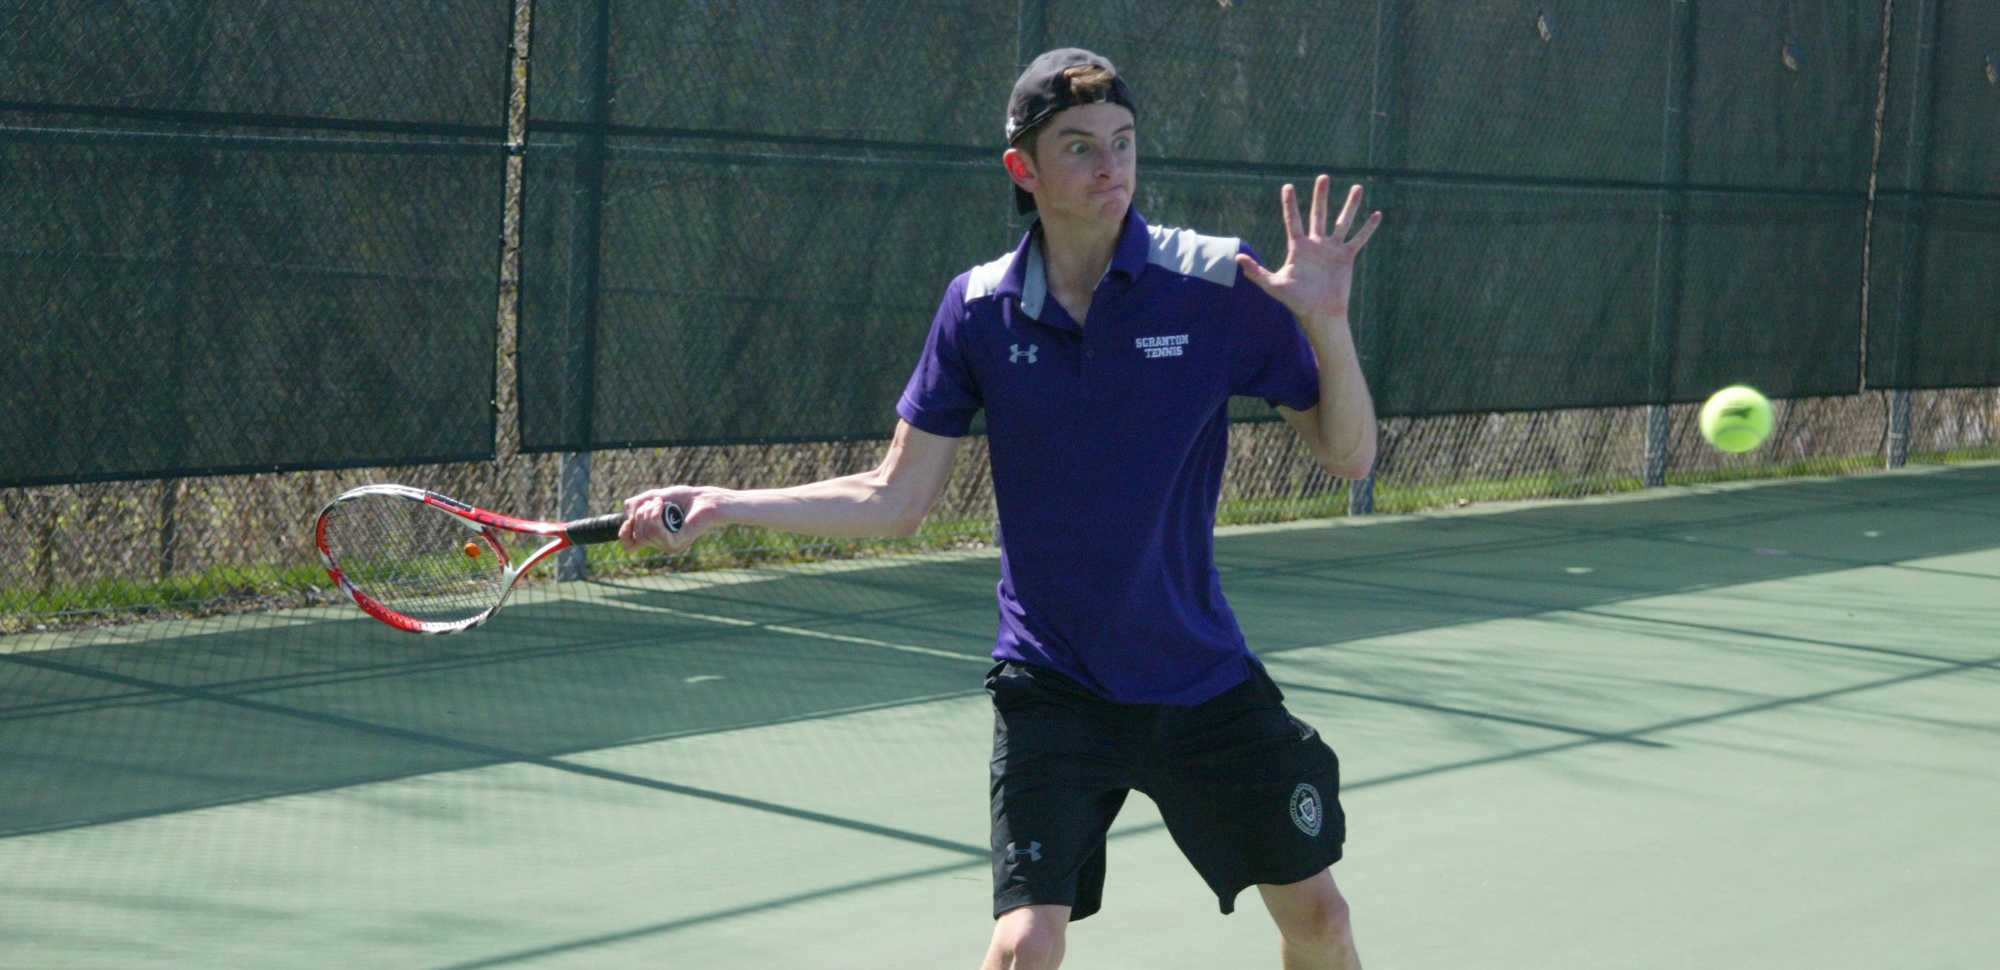 Senior Brian Harkins is one of four Royals who advanced to a singles final at the King's College Fall Invitational on Saturday. Harkins also teamed with Charles Swope to reach the semifinals in doubles play.